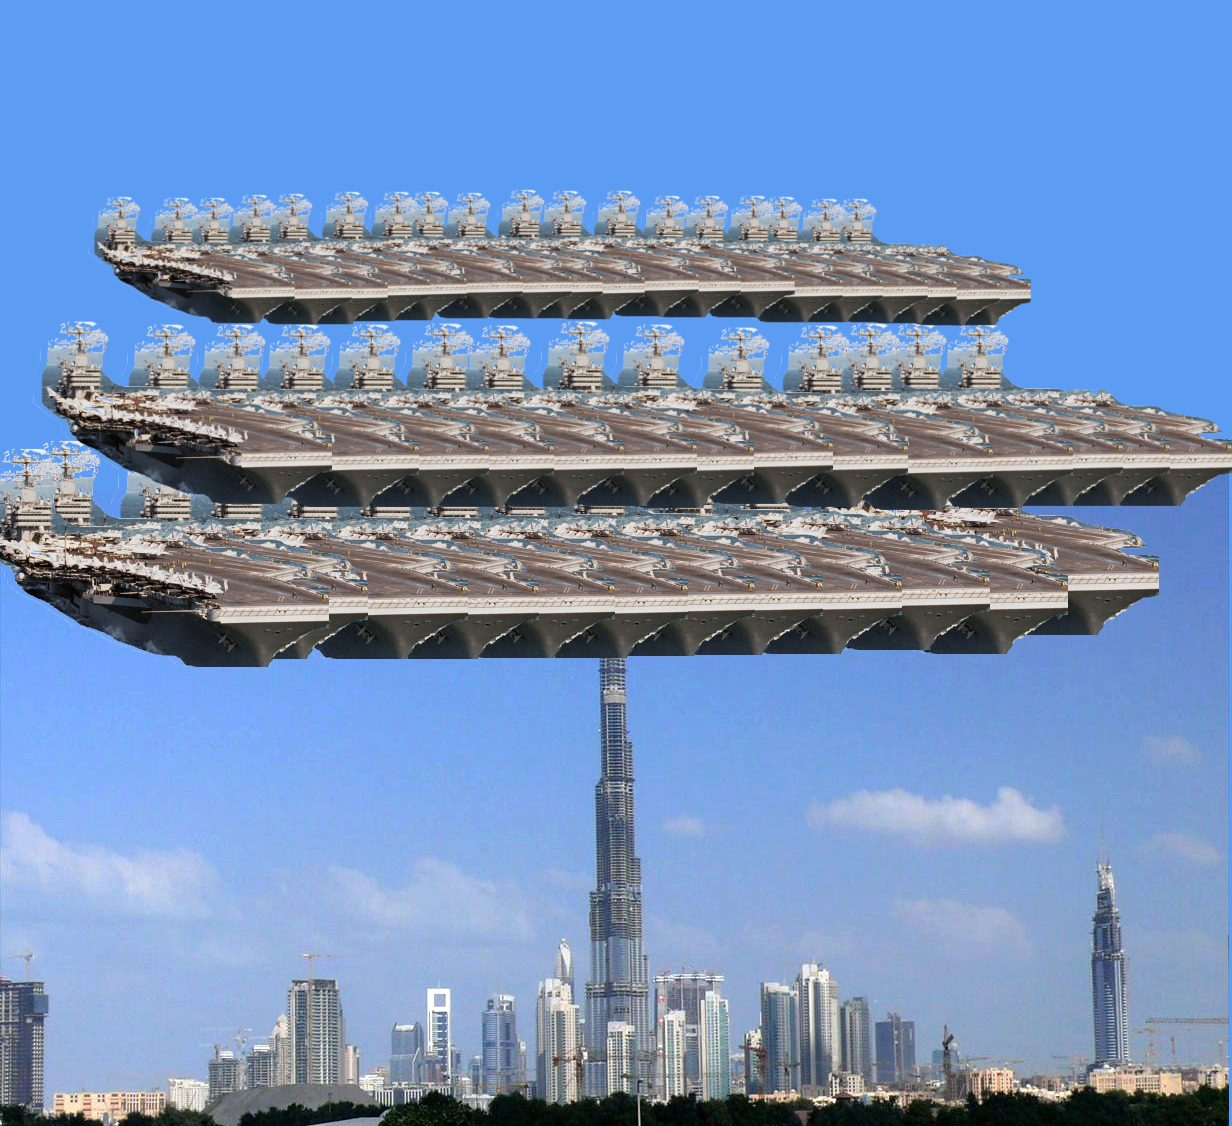 44 aircraft carriers on top of the Burj Dubai